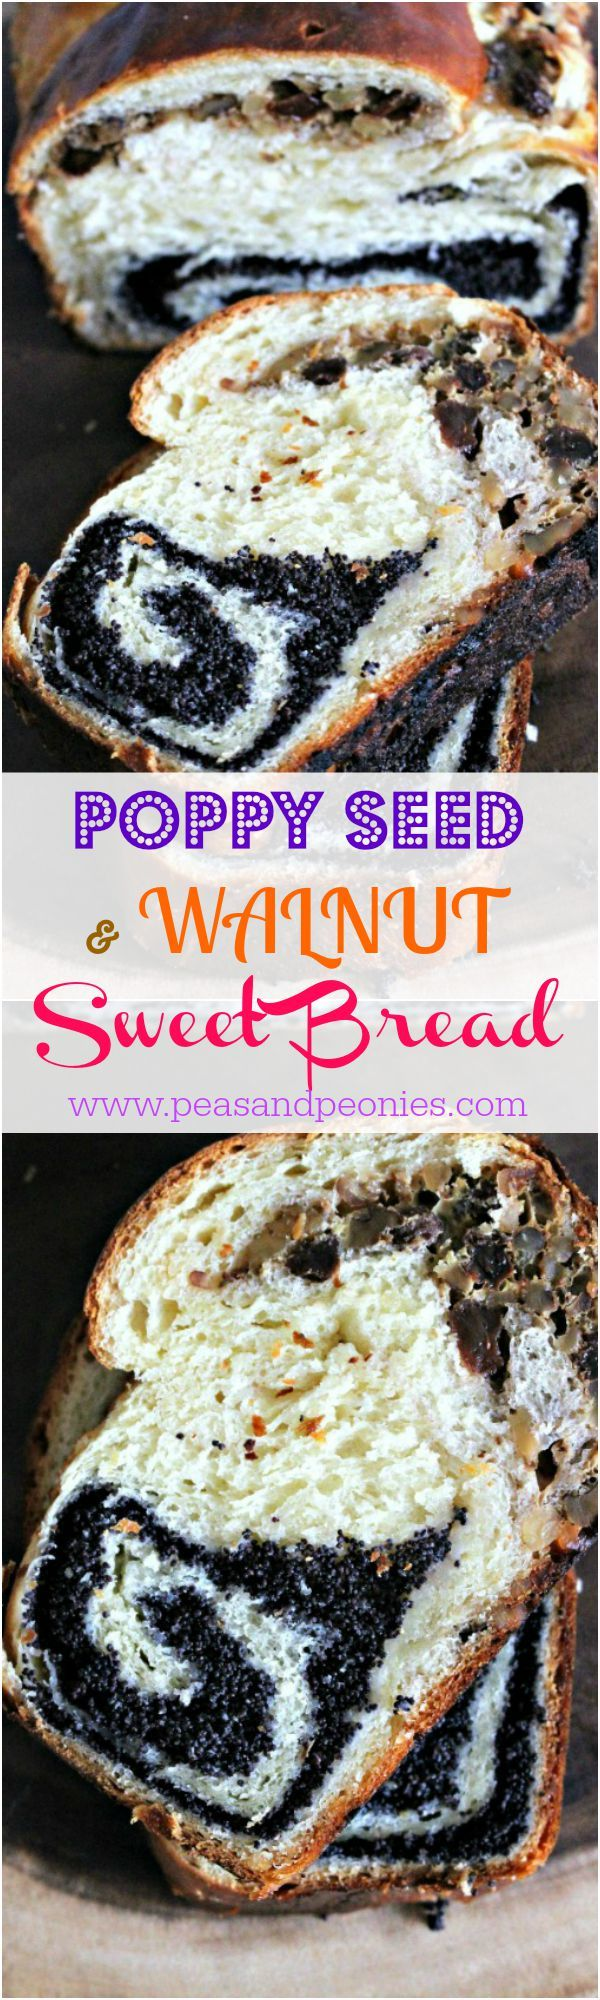 Poppy Seed and Walnut Roll Bread - Peas and Peonies